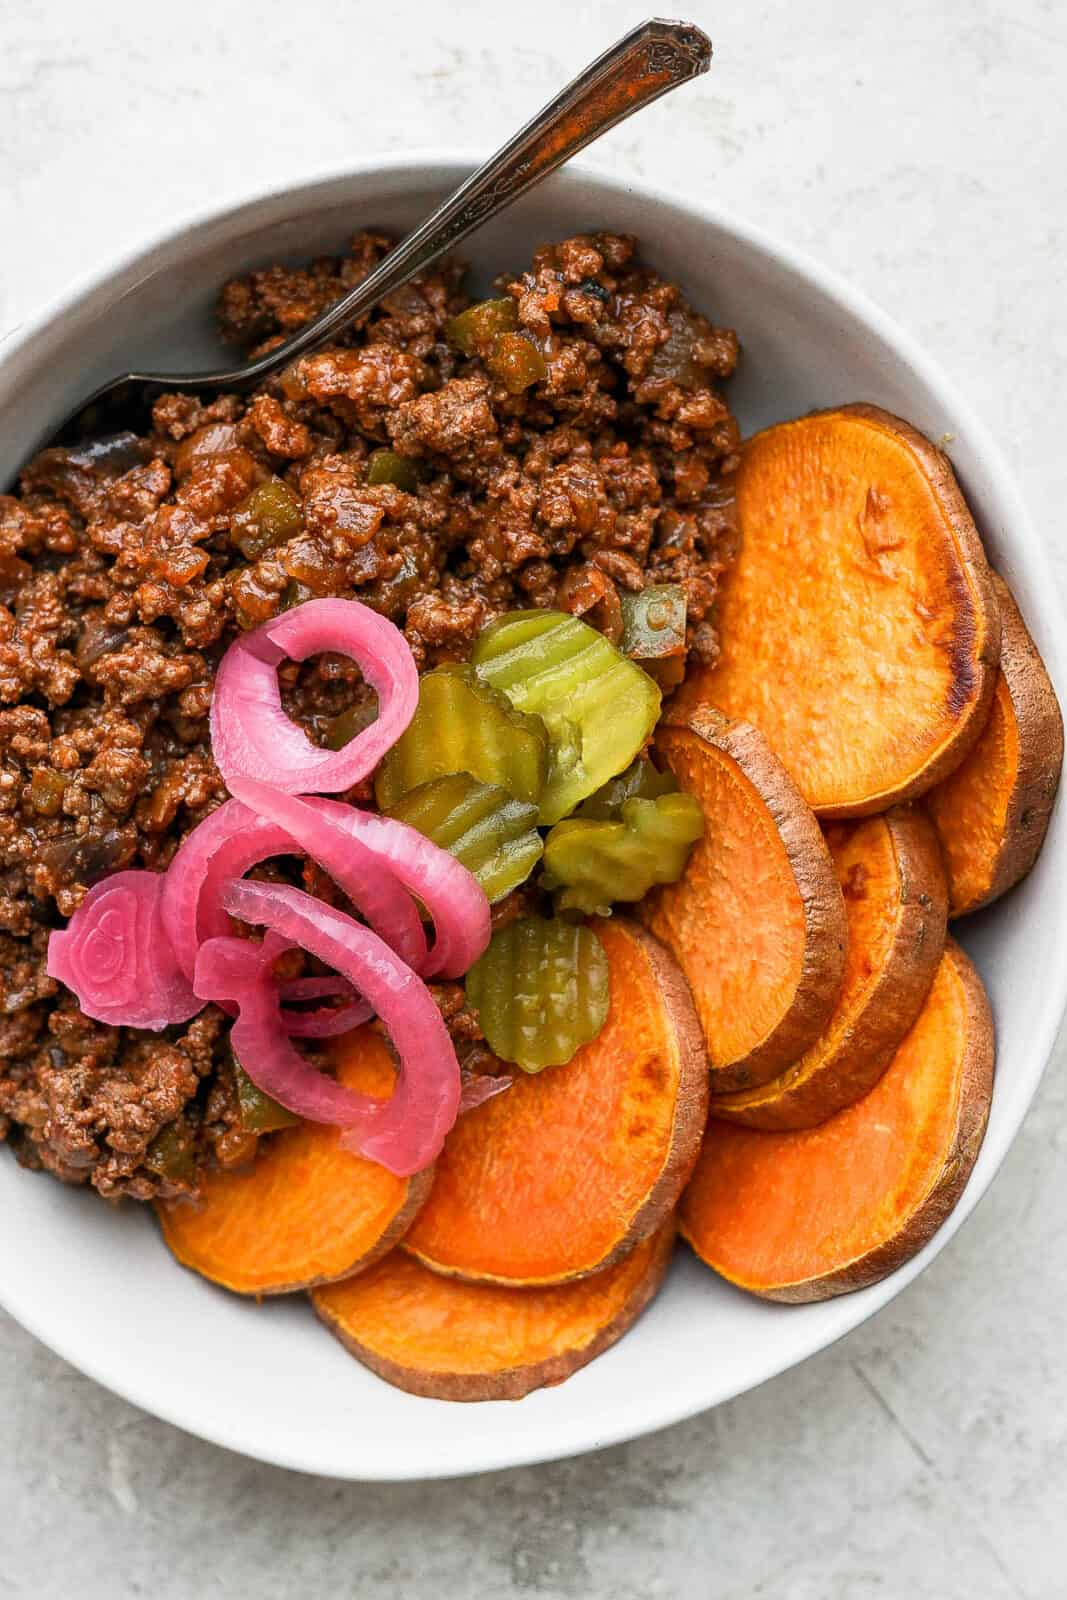 A sloppy joe with pickled onions and burger pickles on top.